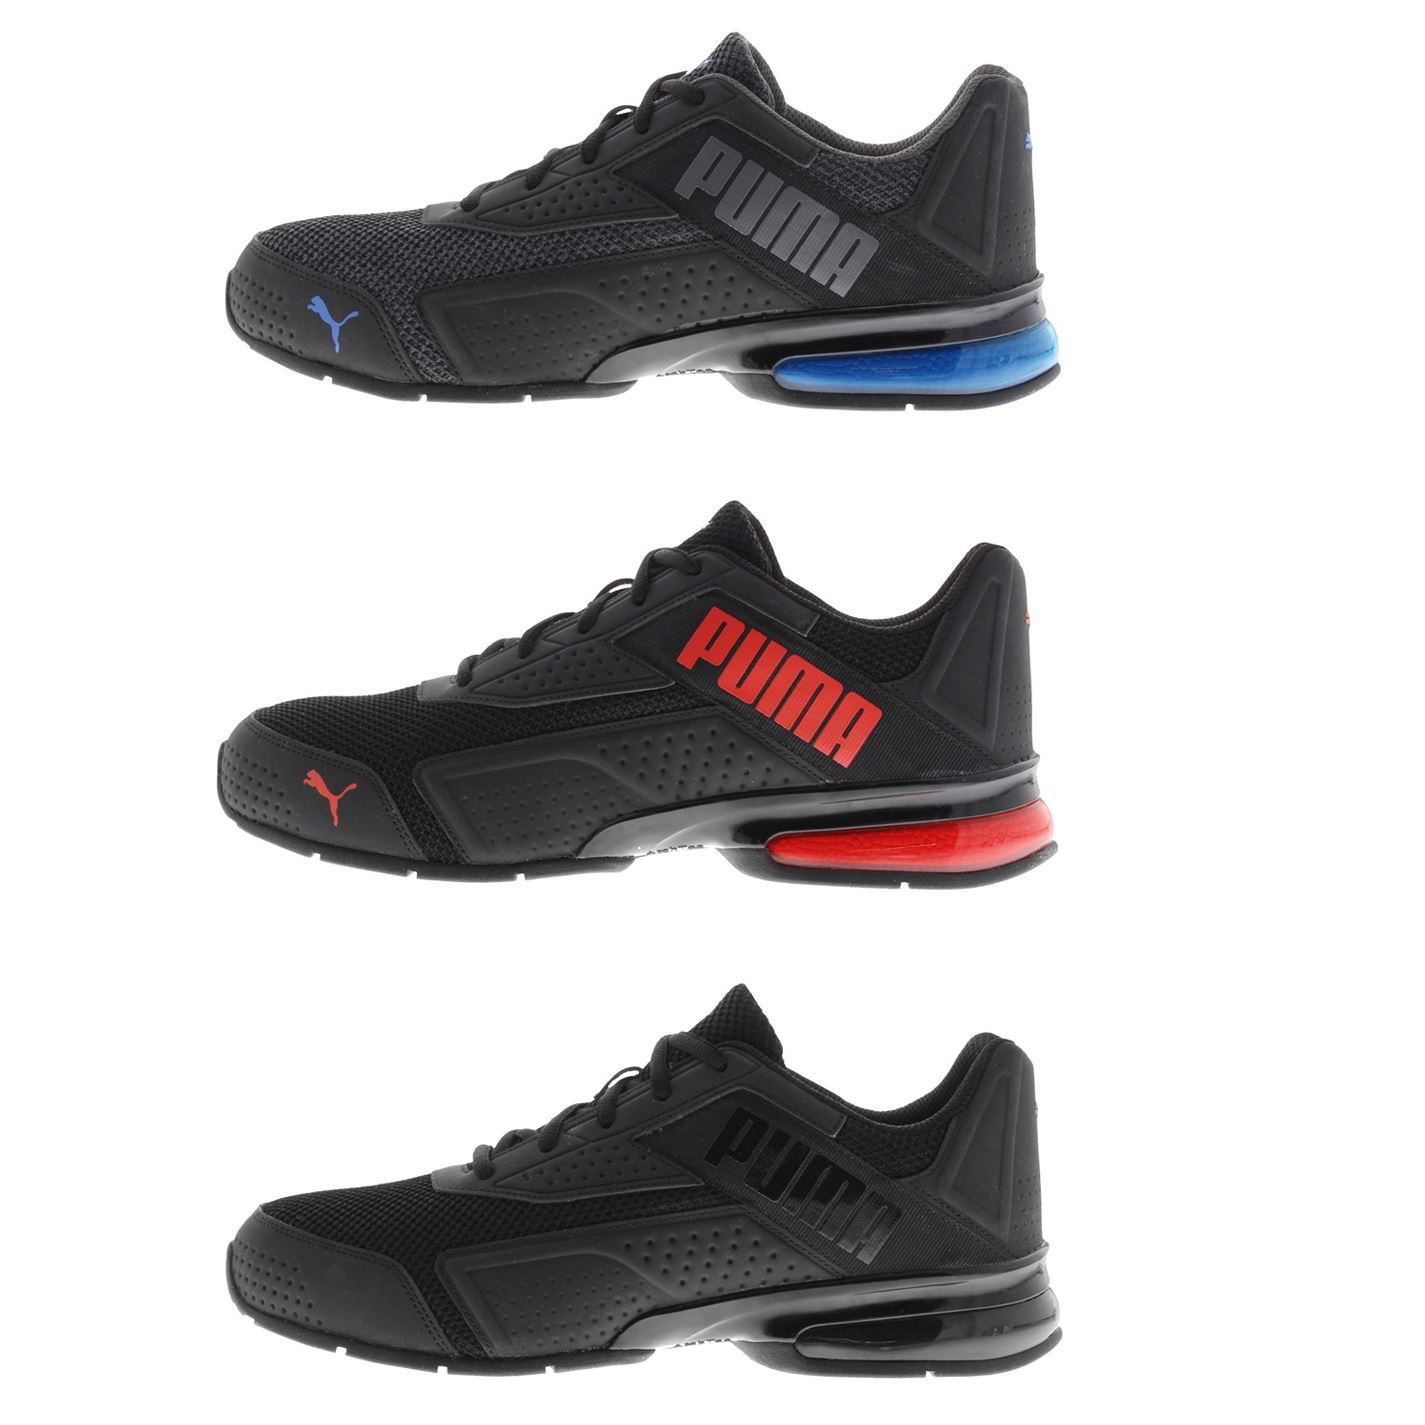 Details about Puma Leader VT Nubuck Mens Trainers Shoes Running Footwear Sneakers